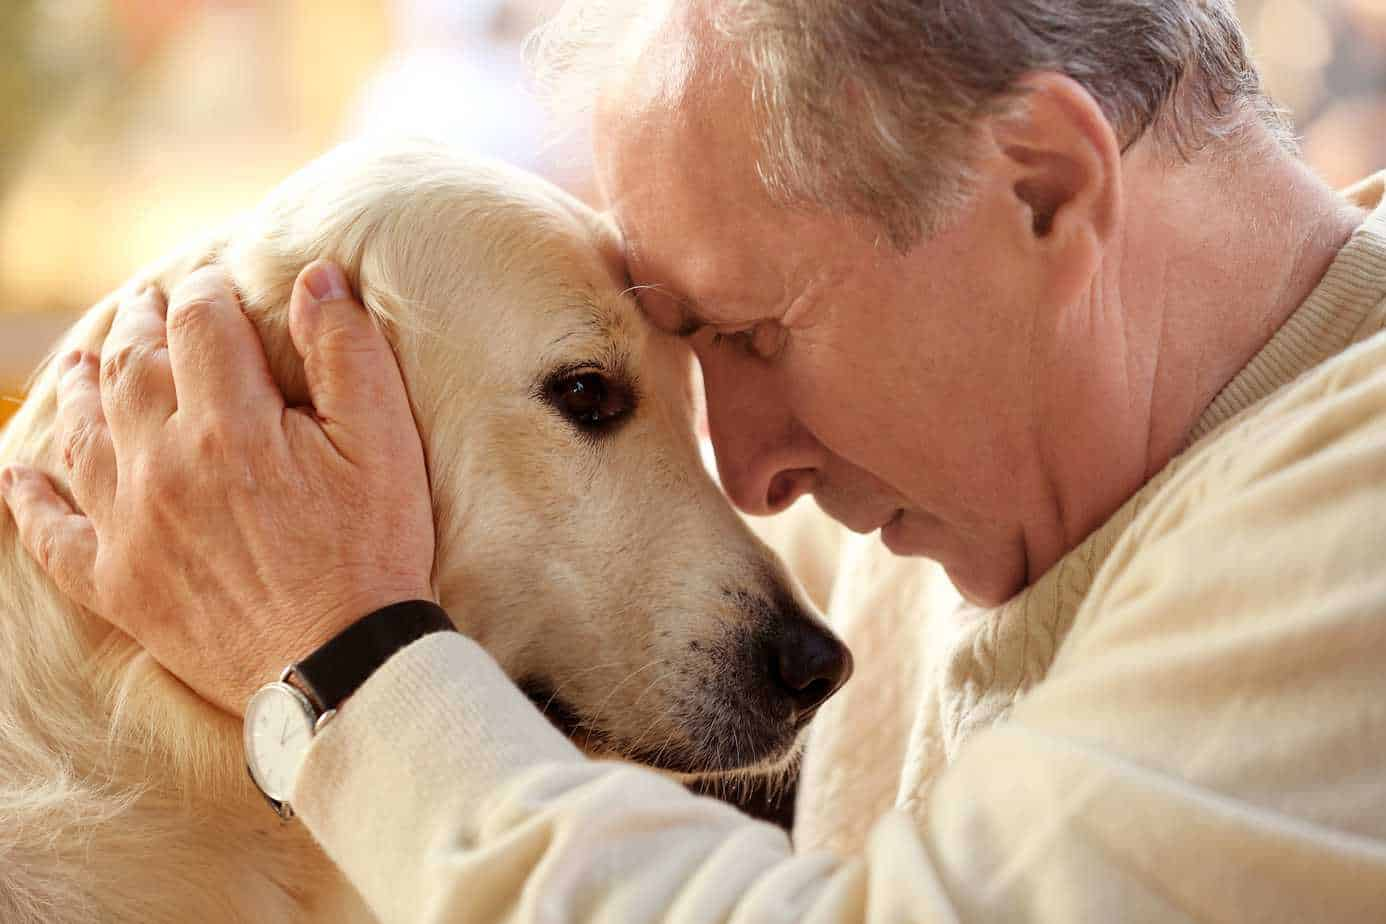 Man cuddles with yellow Labrador retriever. Labs rank high on lists of most popular dog breeds.